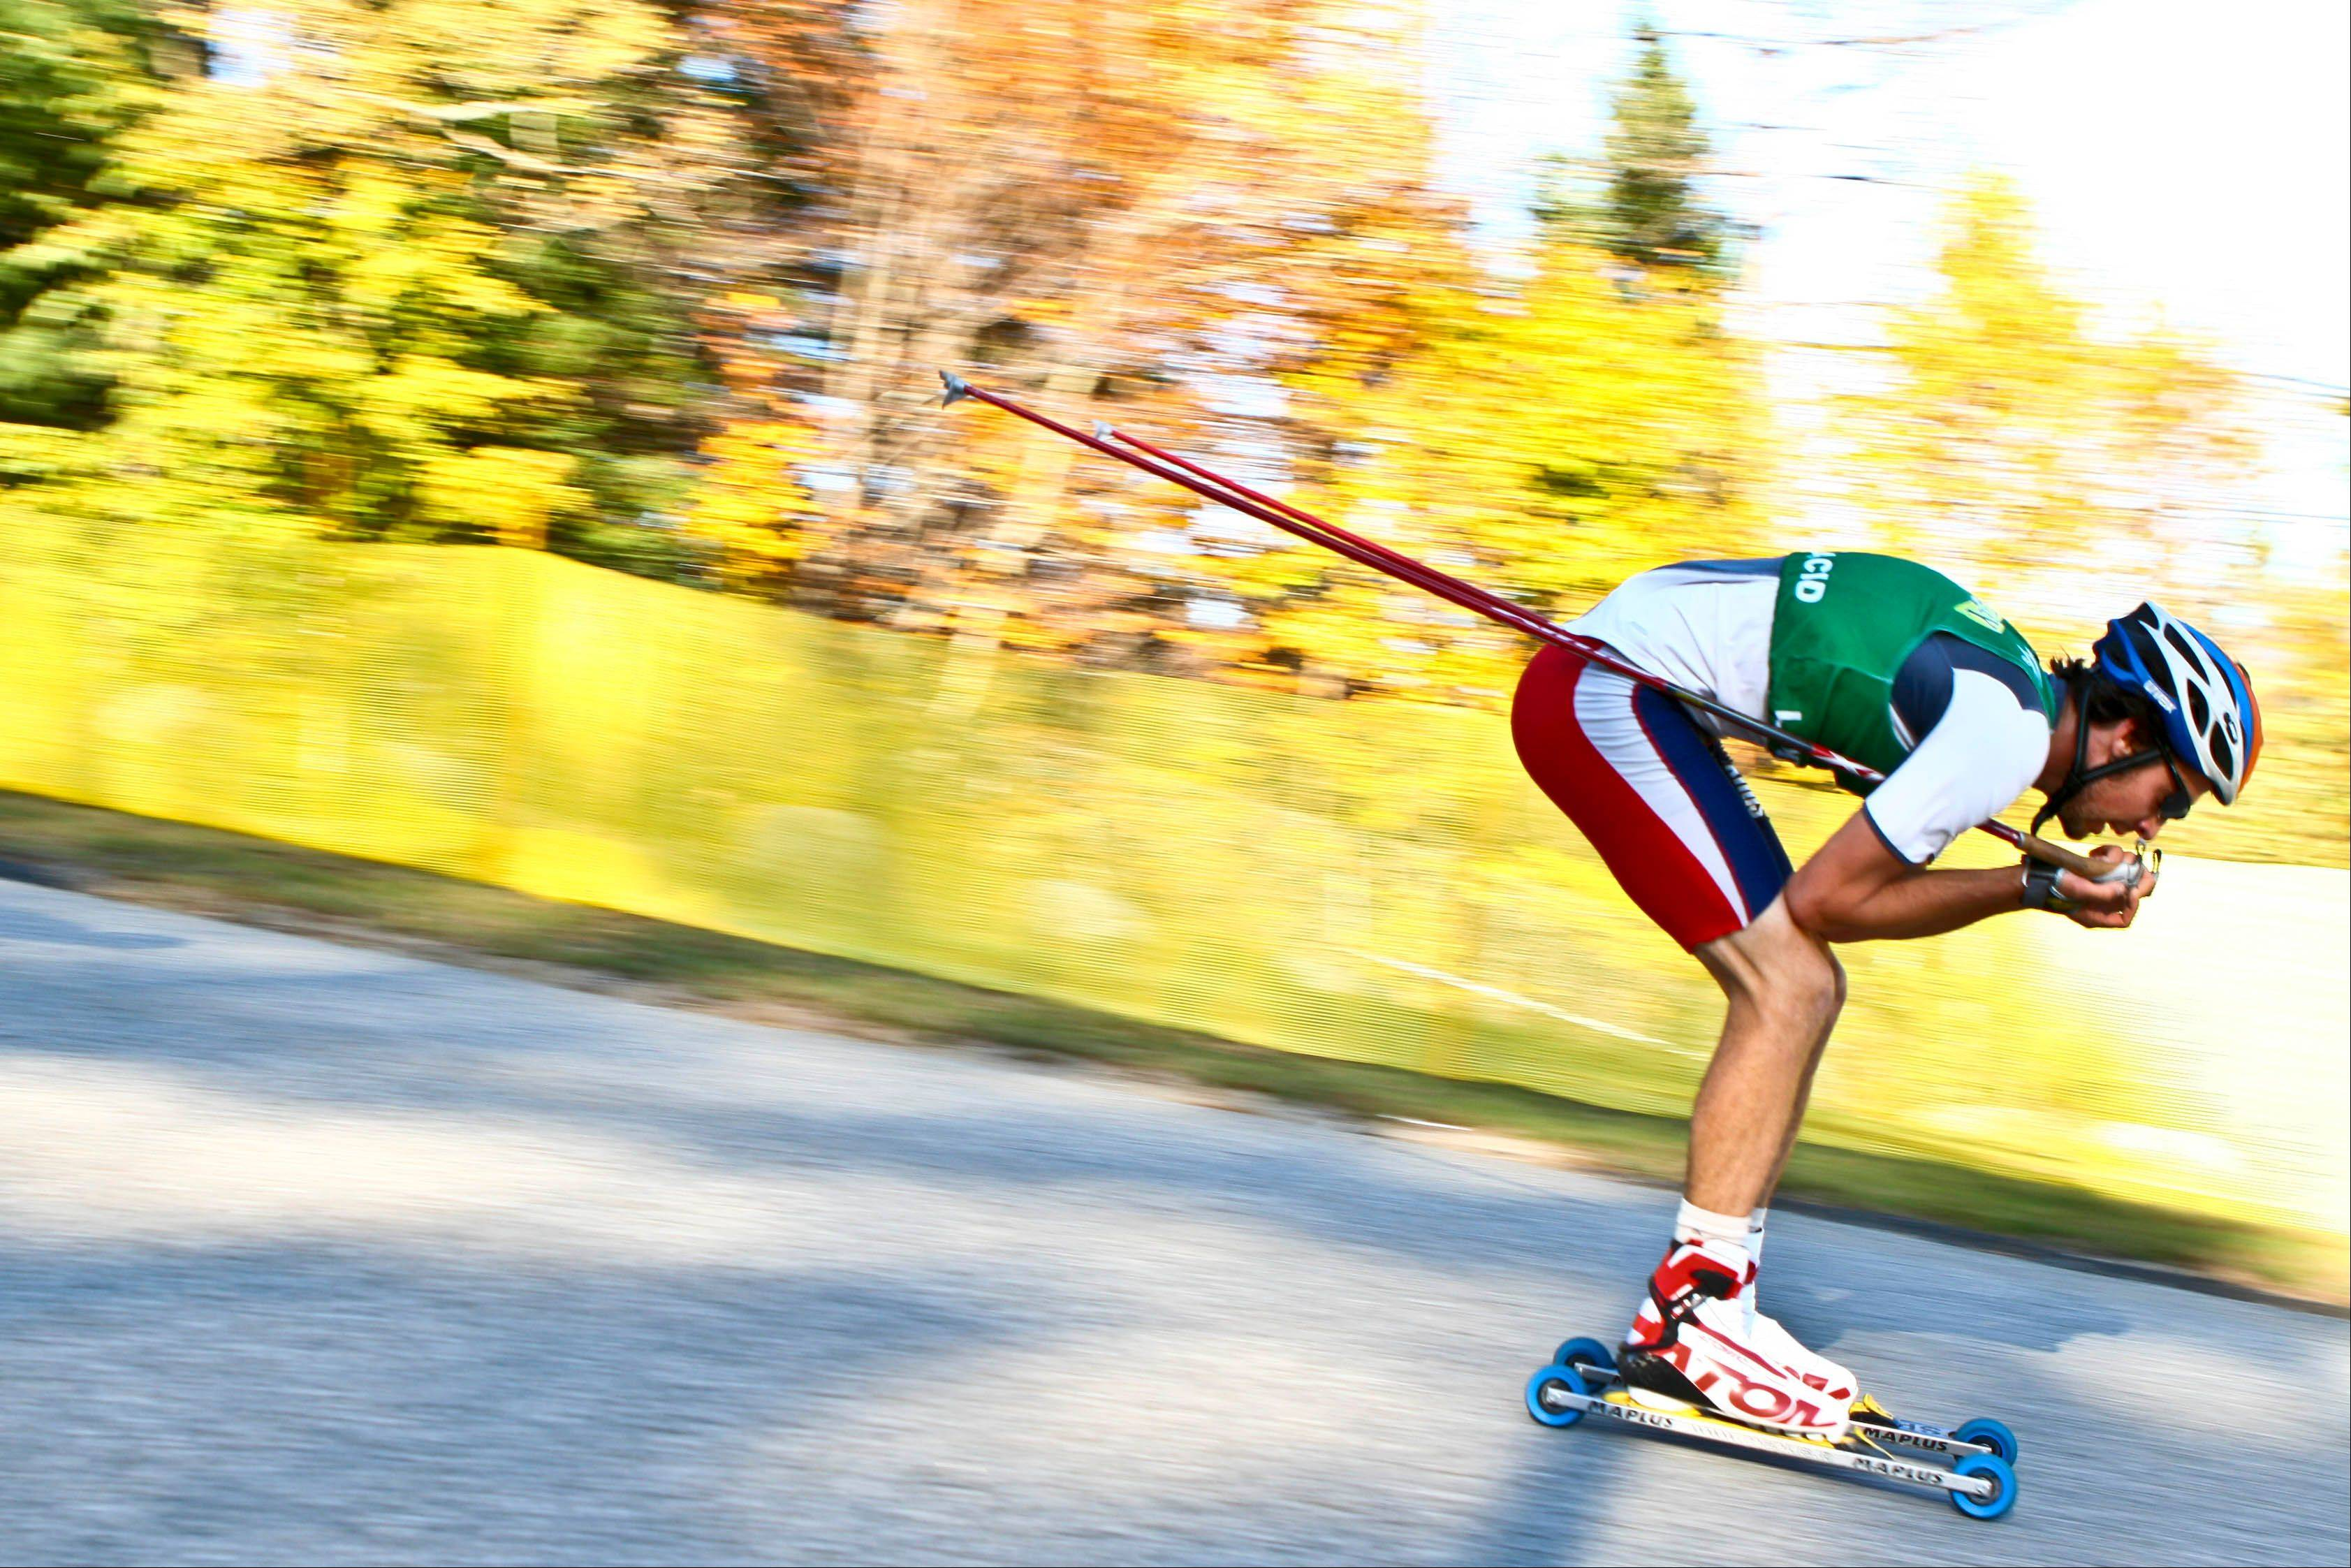 U.S. Nordic combined skier Johnny Spillane, an Olympic silver medalist, races on roller skis.